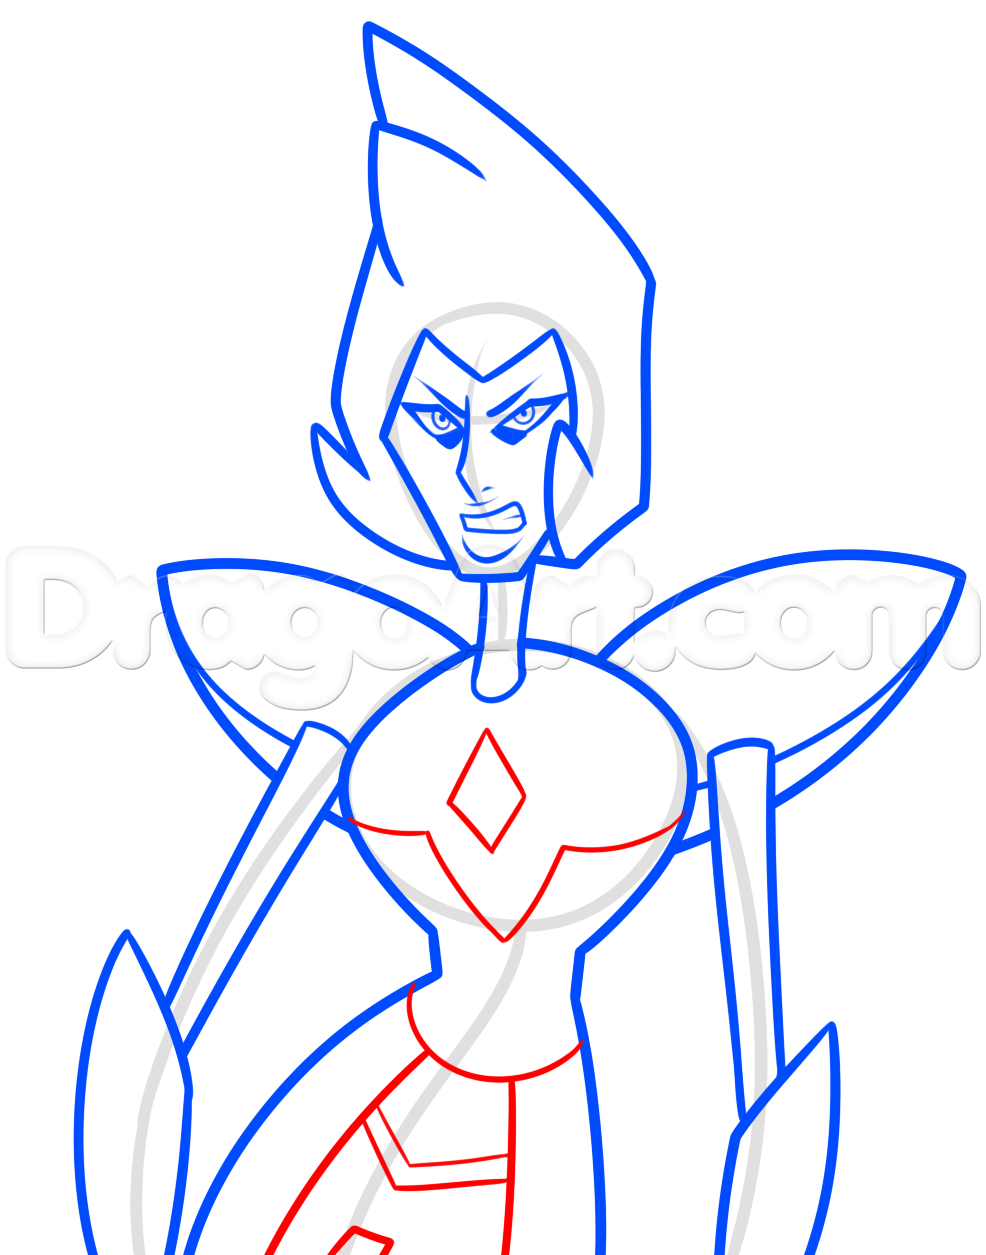 Diamond Cartoon Drawing at GetDrawings com | Free for